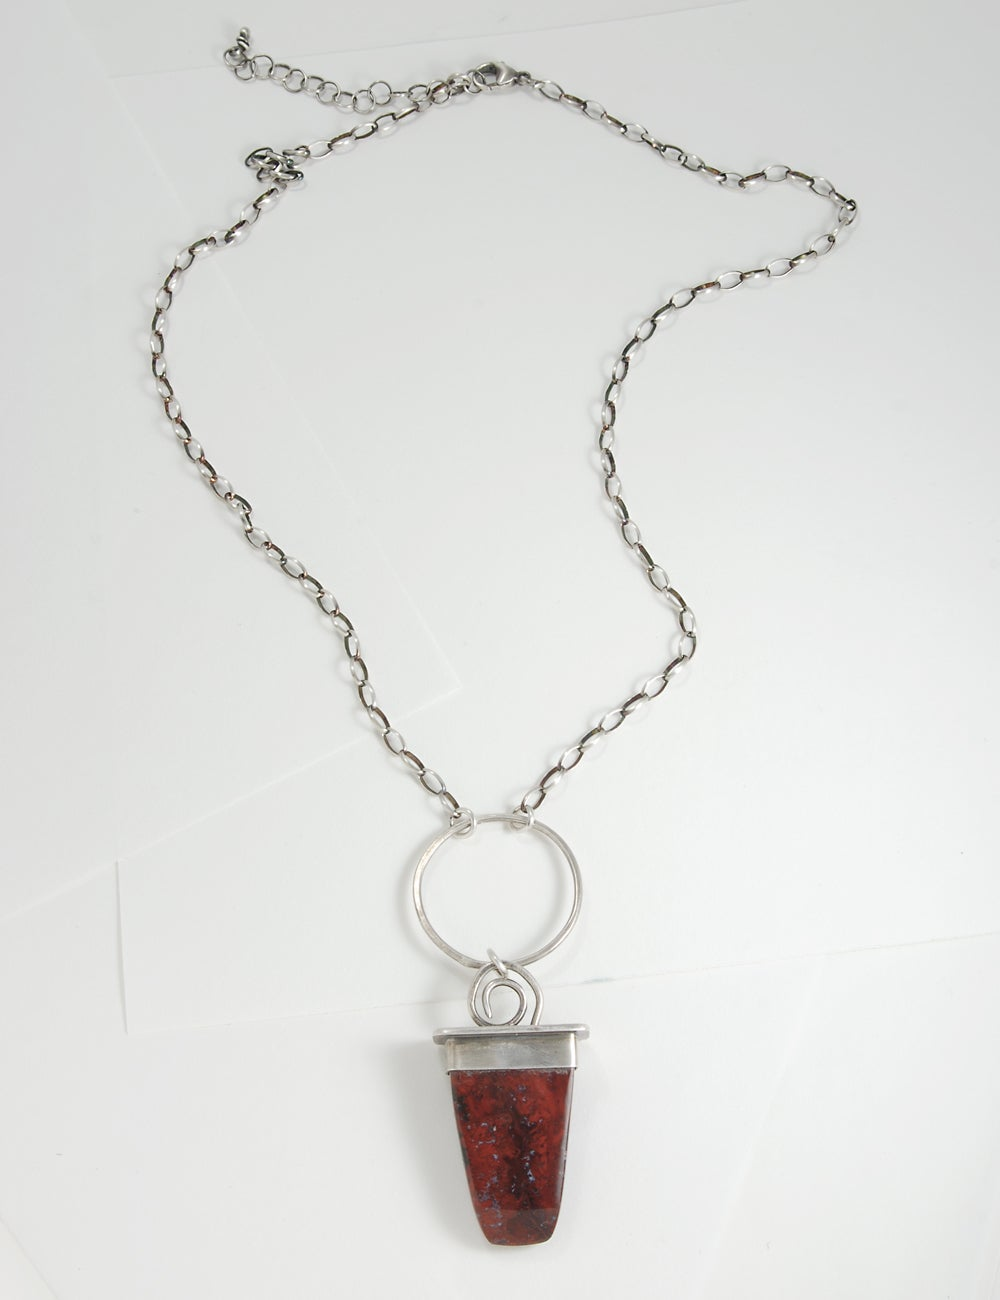 Image of Brenda Arizona Red Jasper/Agate, Sterling Silver Chain, Artisan Made, One of a Kind